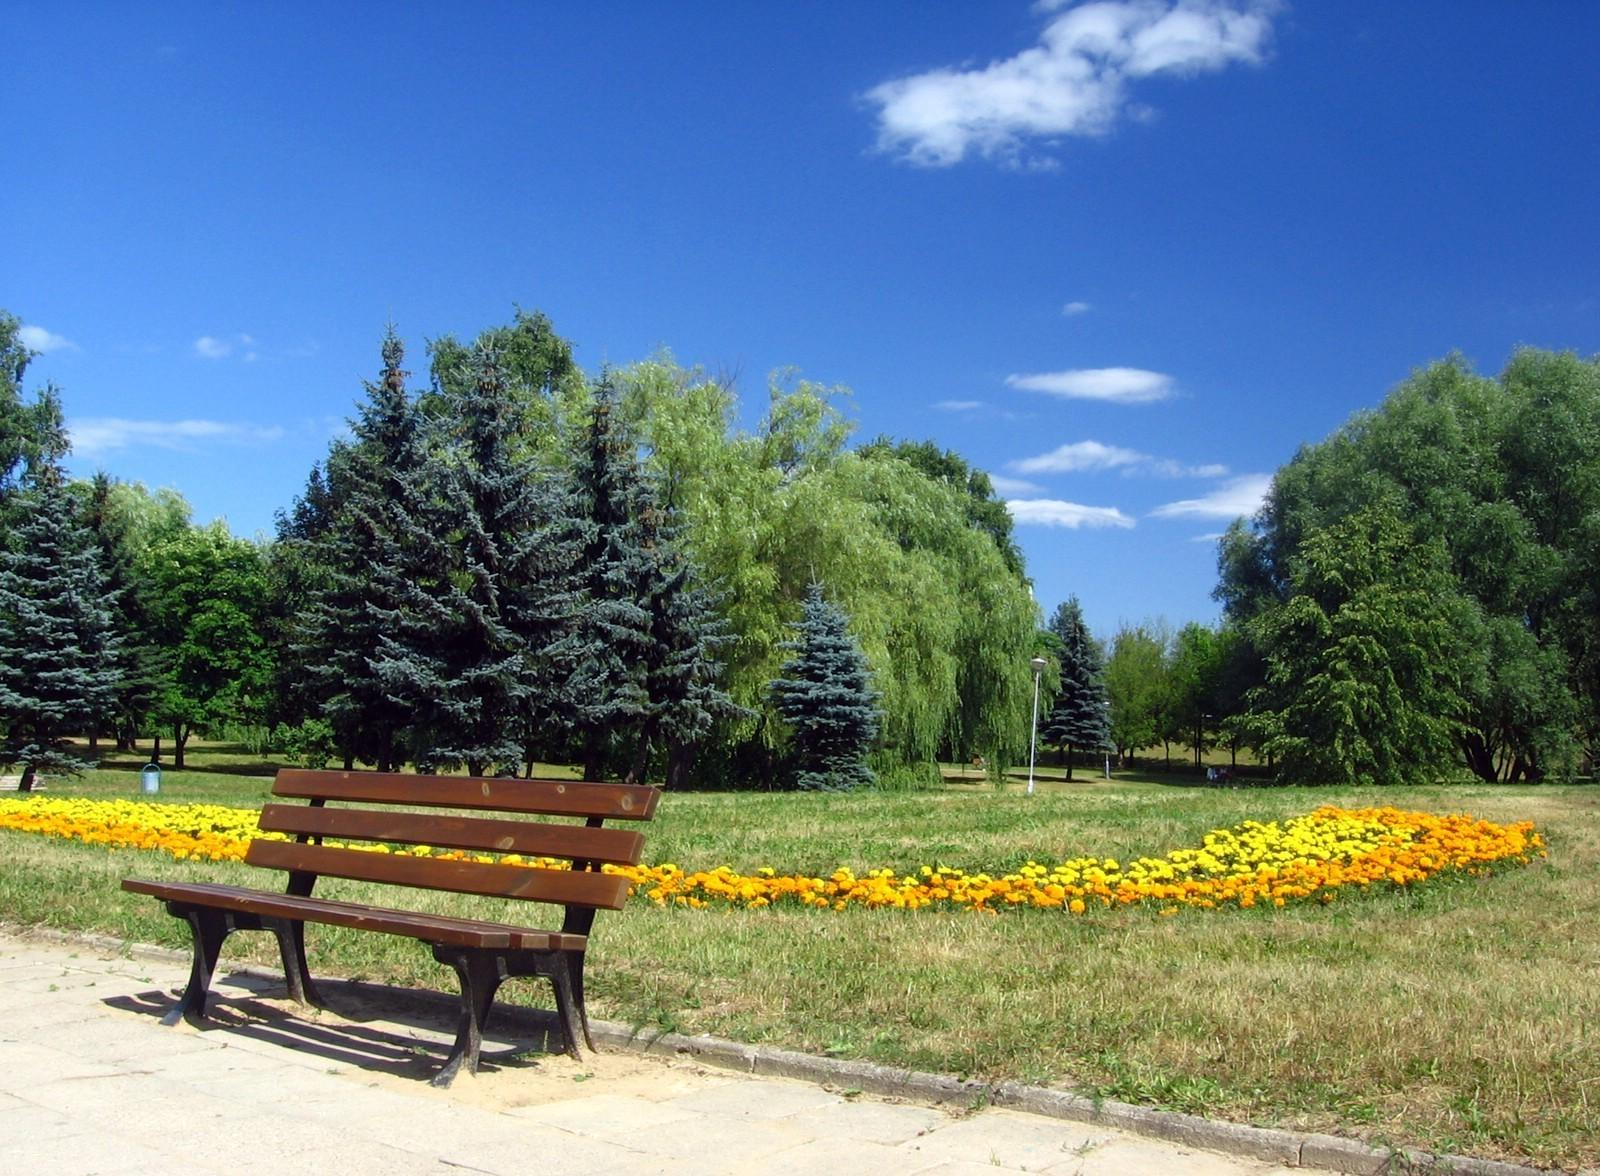 Misc: Romania Bucharest Park Cloud Bank Blue Sky Summer Tree Flower